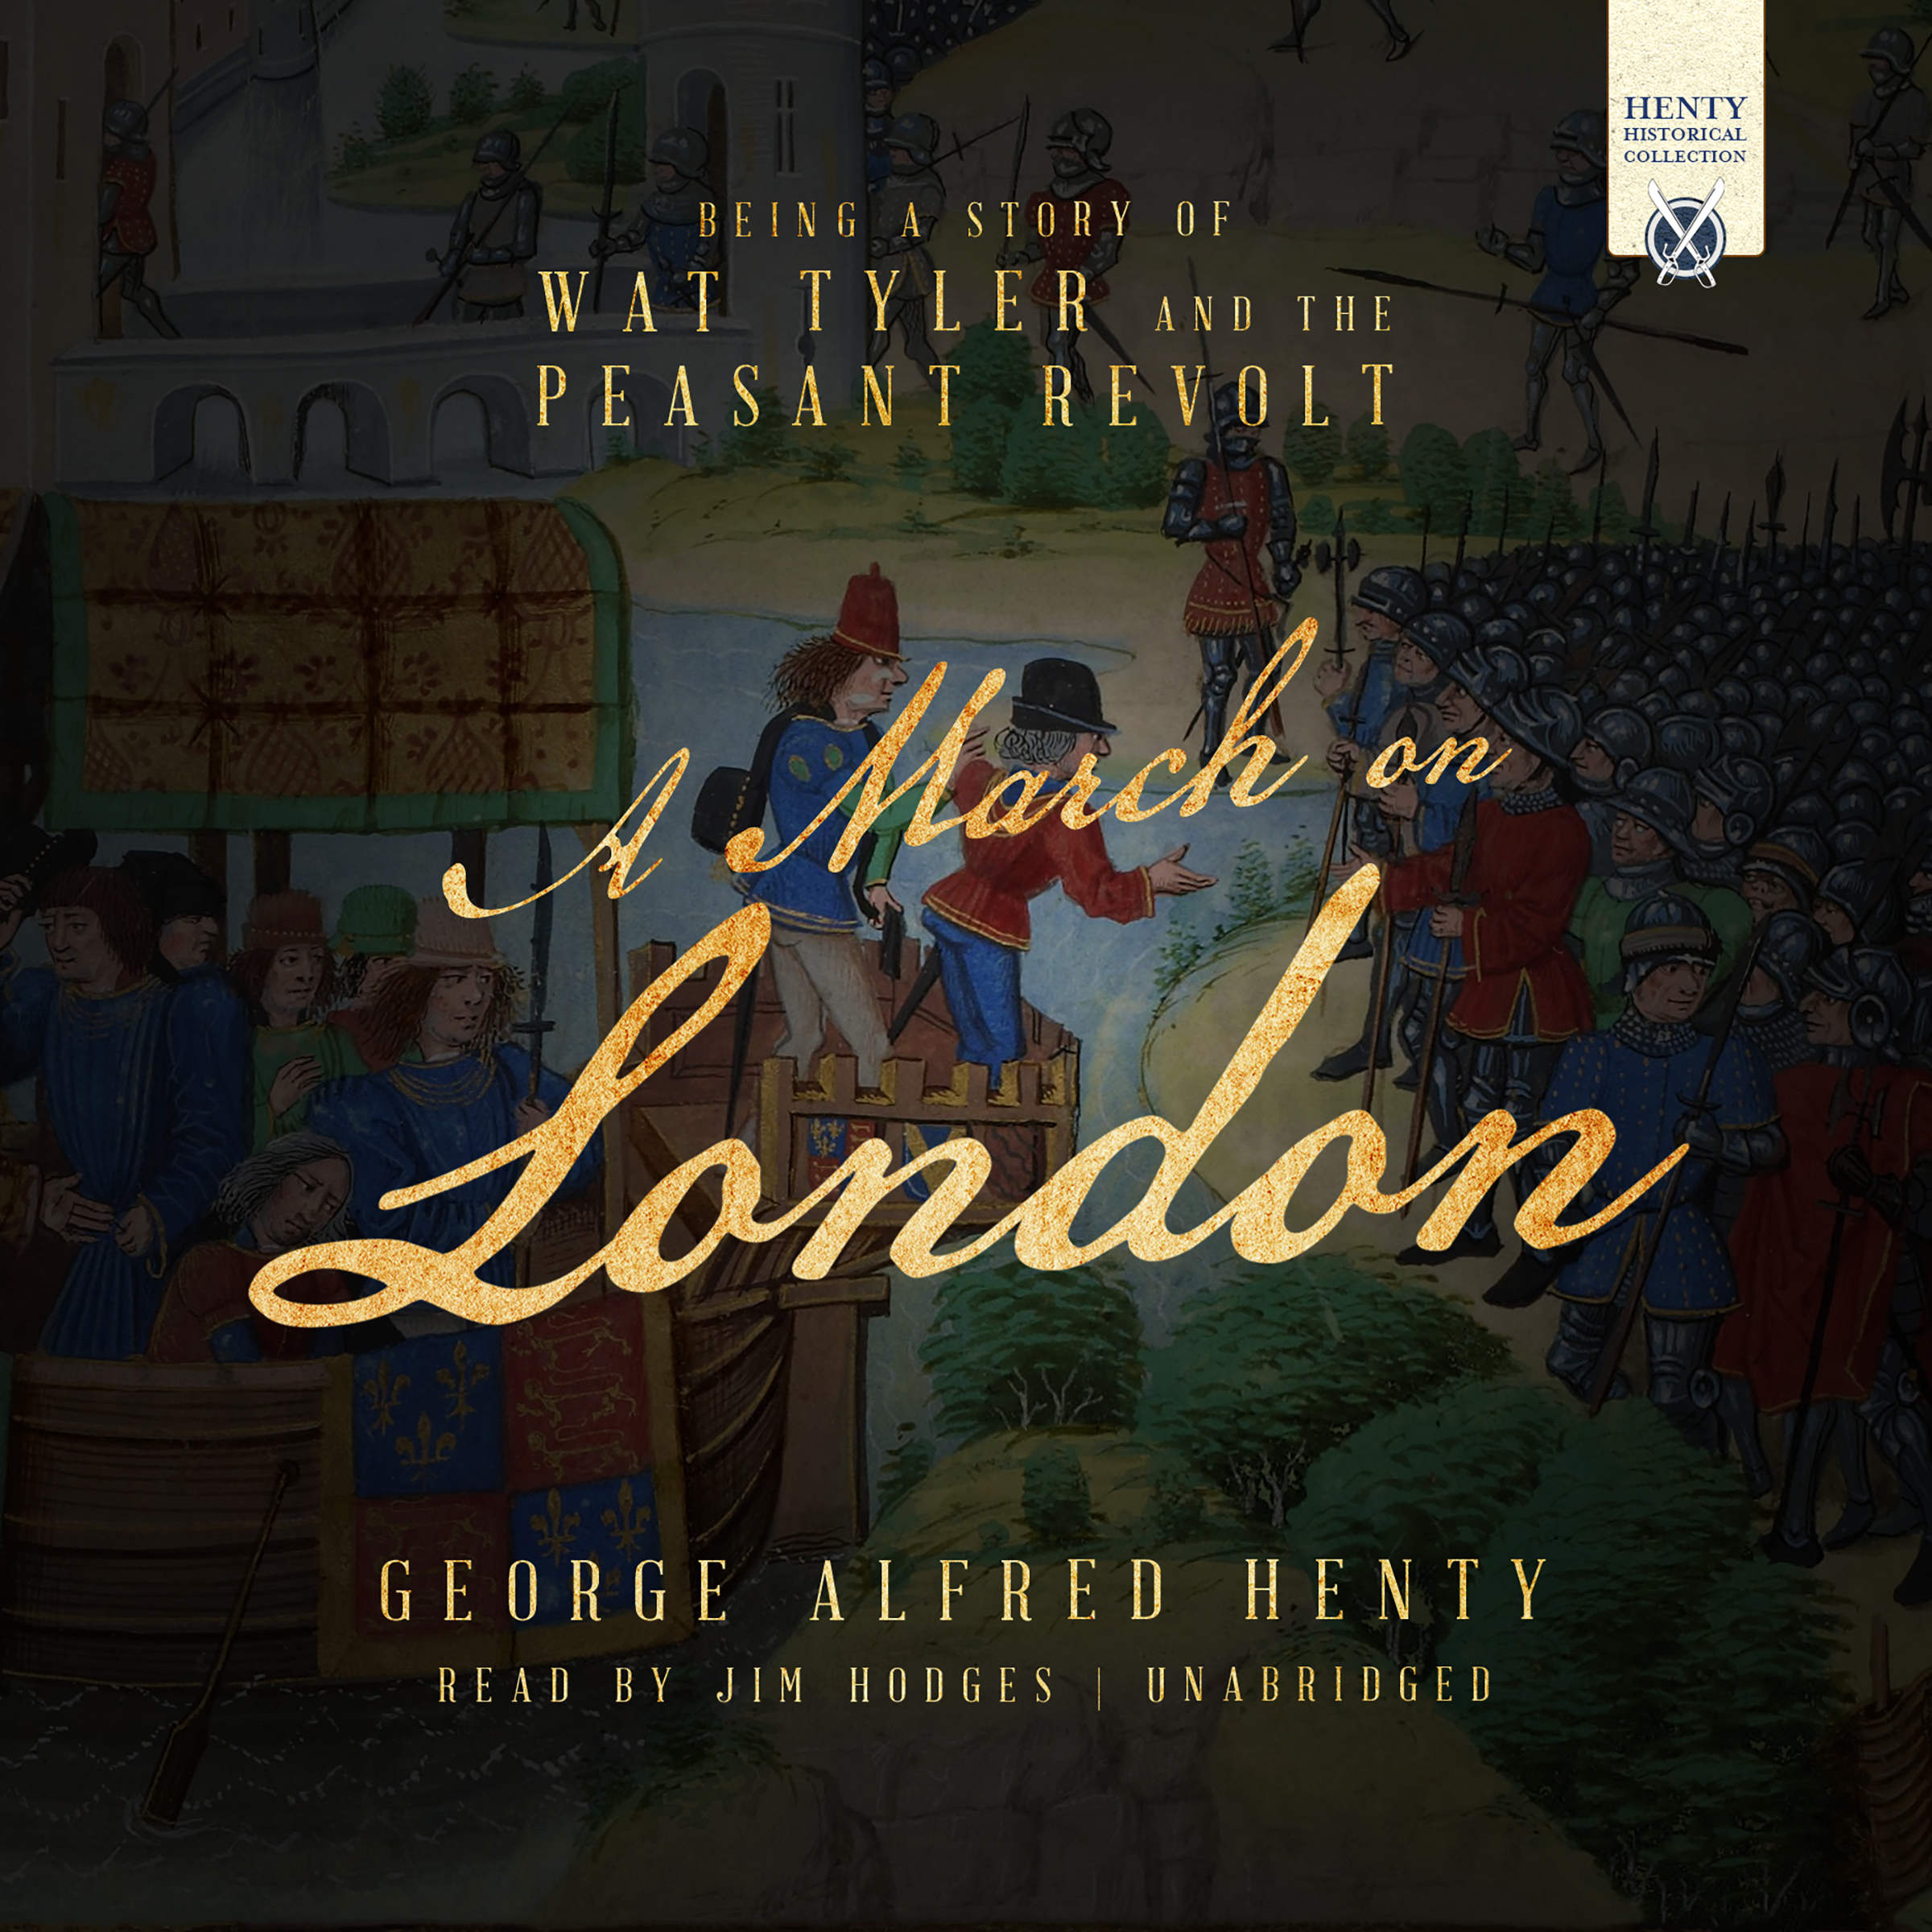 Printable A March on London: Being a Story of Wat Tyler and the Peasant Revolt Audiobook Cover Art